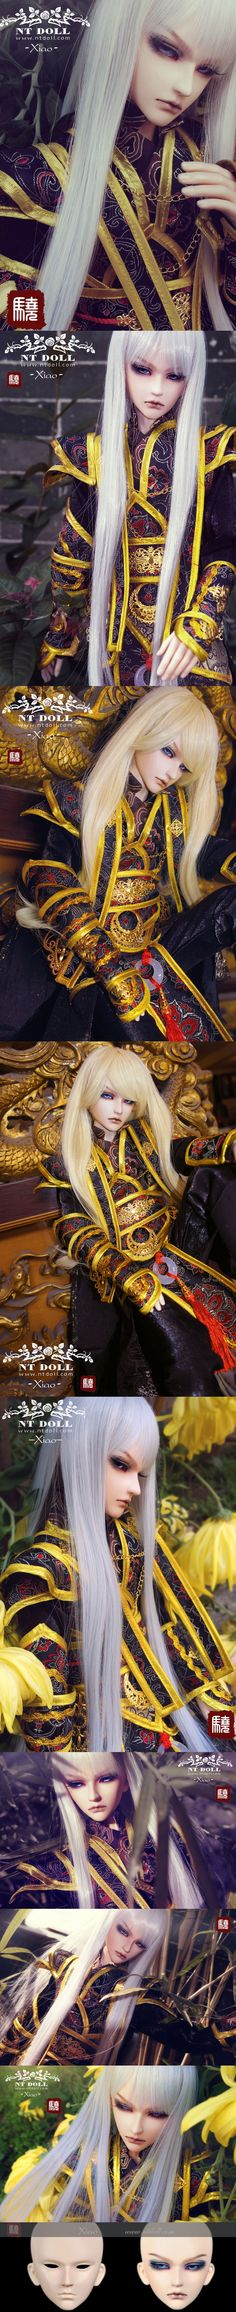 BJD Xiao 62cm Boy Ball-jointed doll